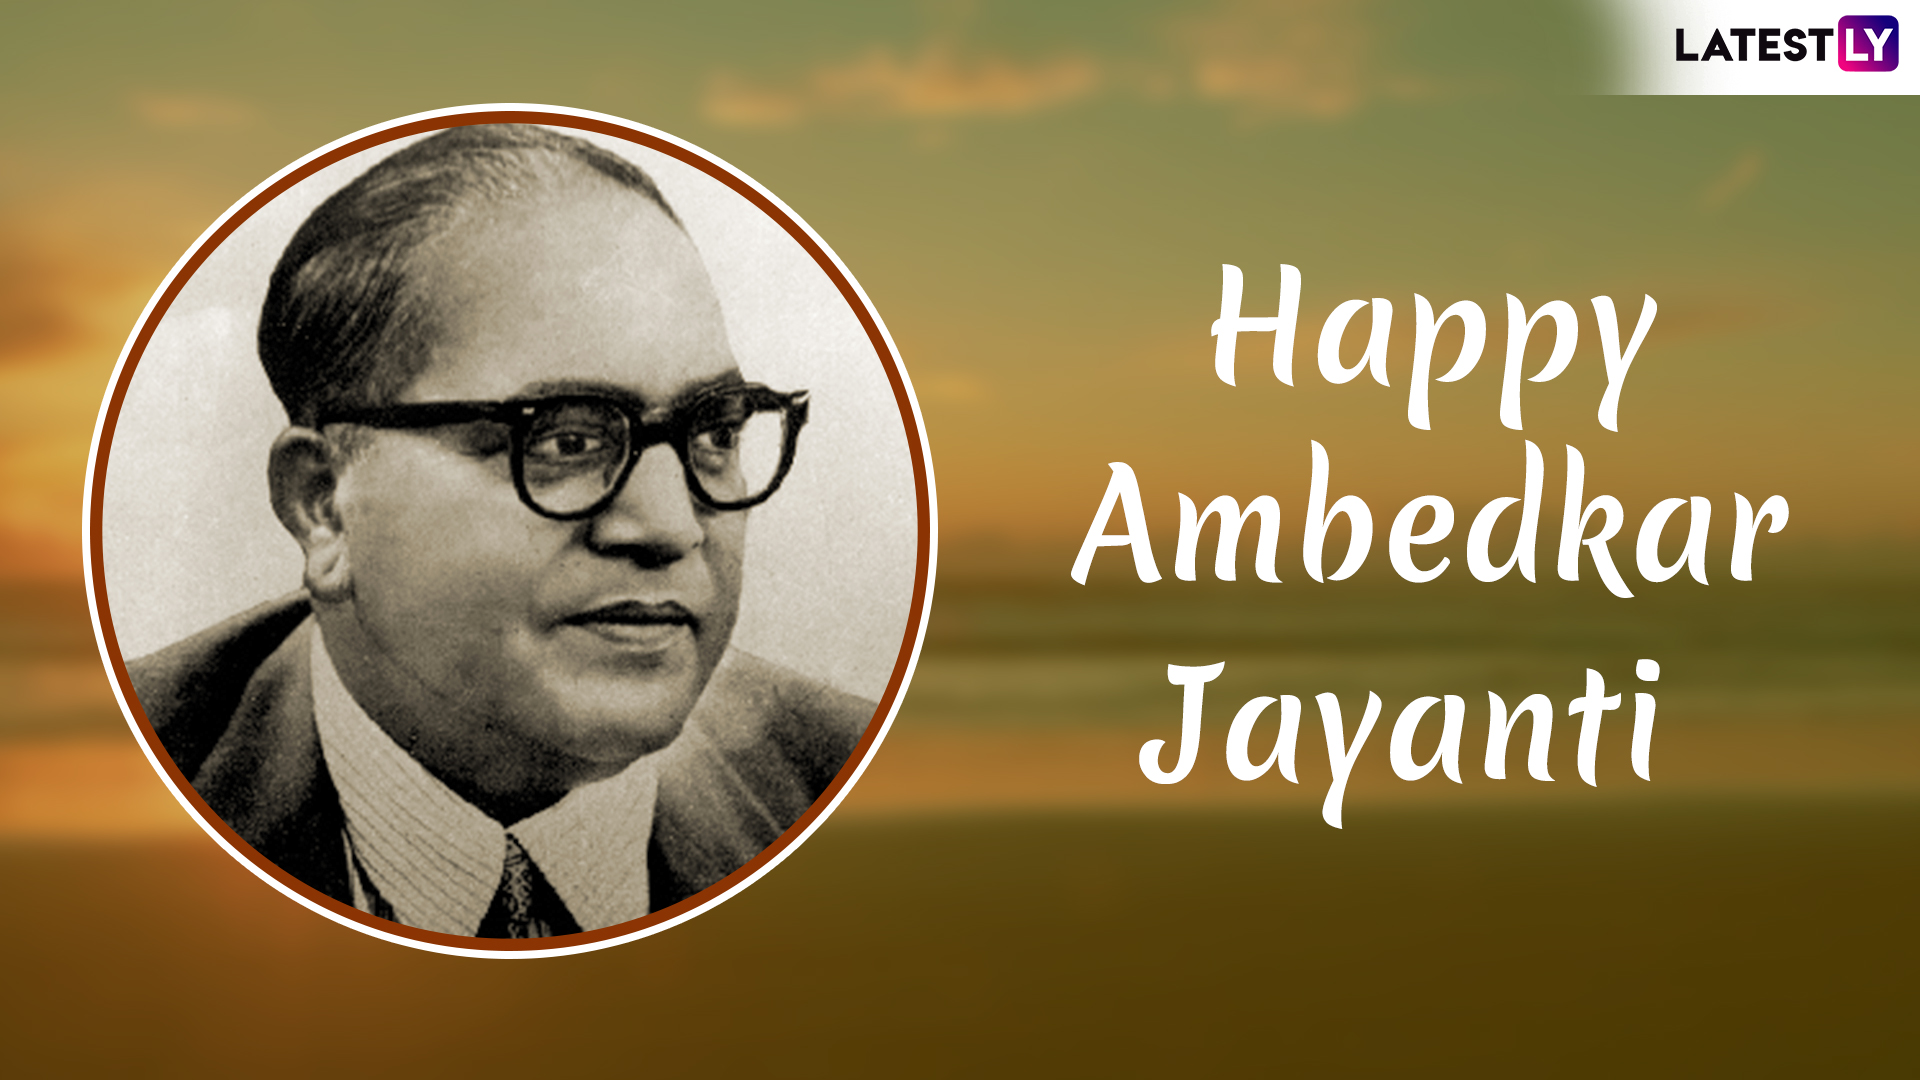 Ambedkar Jayanti 2019 Images With Quotes Hd Wallpapers For Free